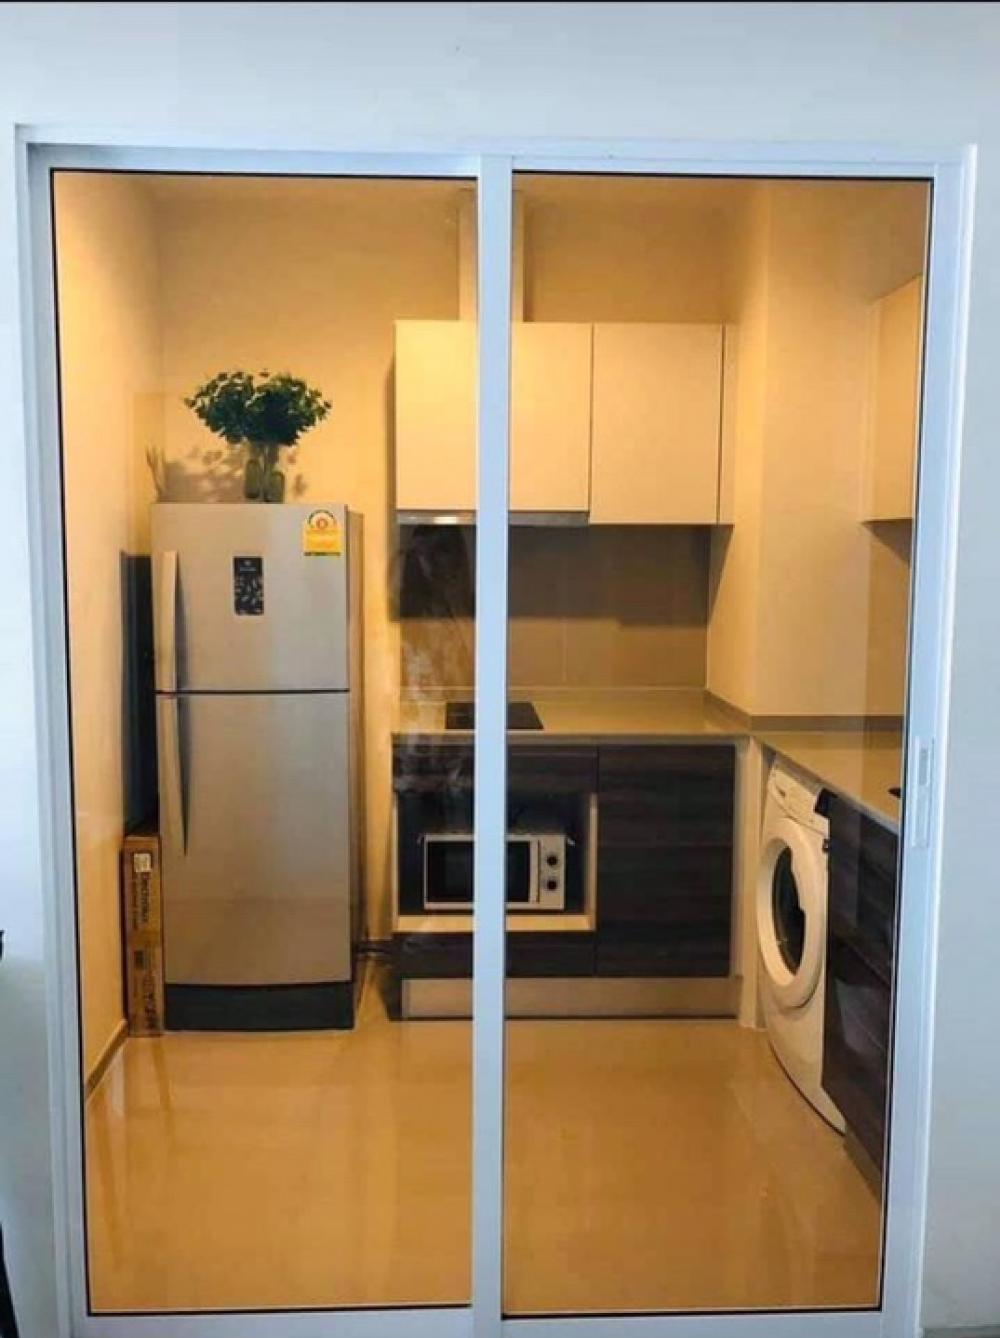 For RentCondoRatchadapisek, Huaikwang, Suttisan : Rent now !! Centric ratchada huaikwang 37.58Sq.m 1 bedroom 17,500 baht per month with furniture, appliances, fully north, beautiful new room. Interested, please contact Khun Bu 099-4956985 ID Line 099-4956985